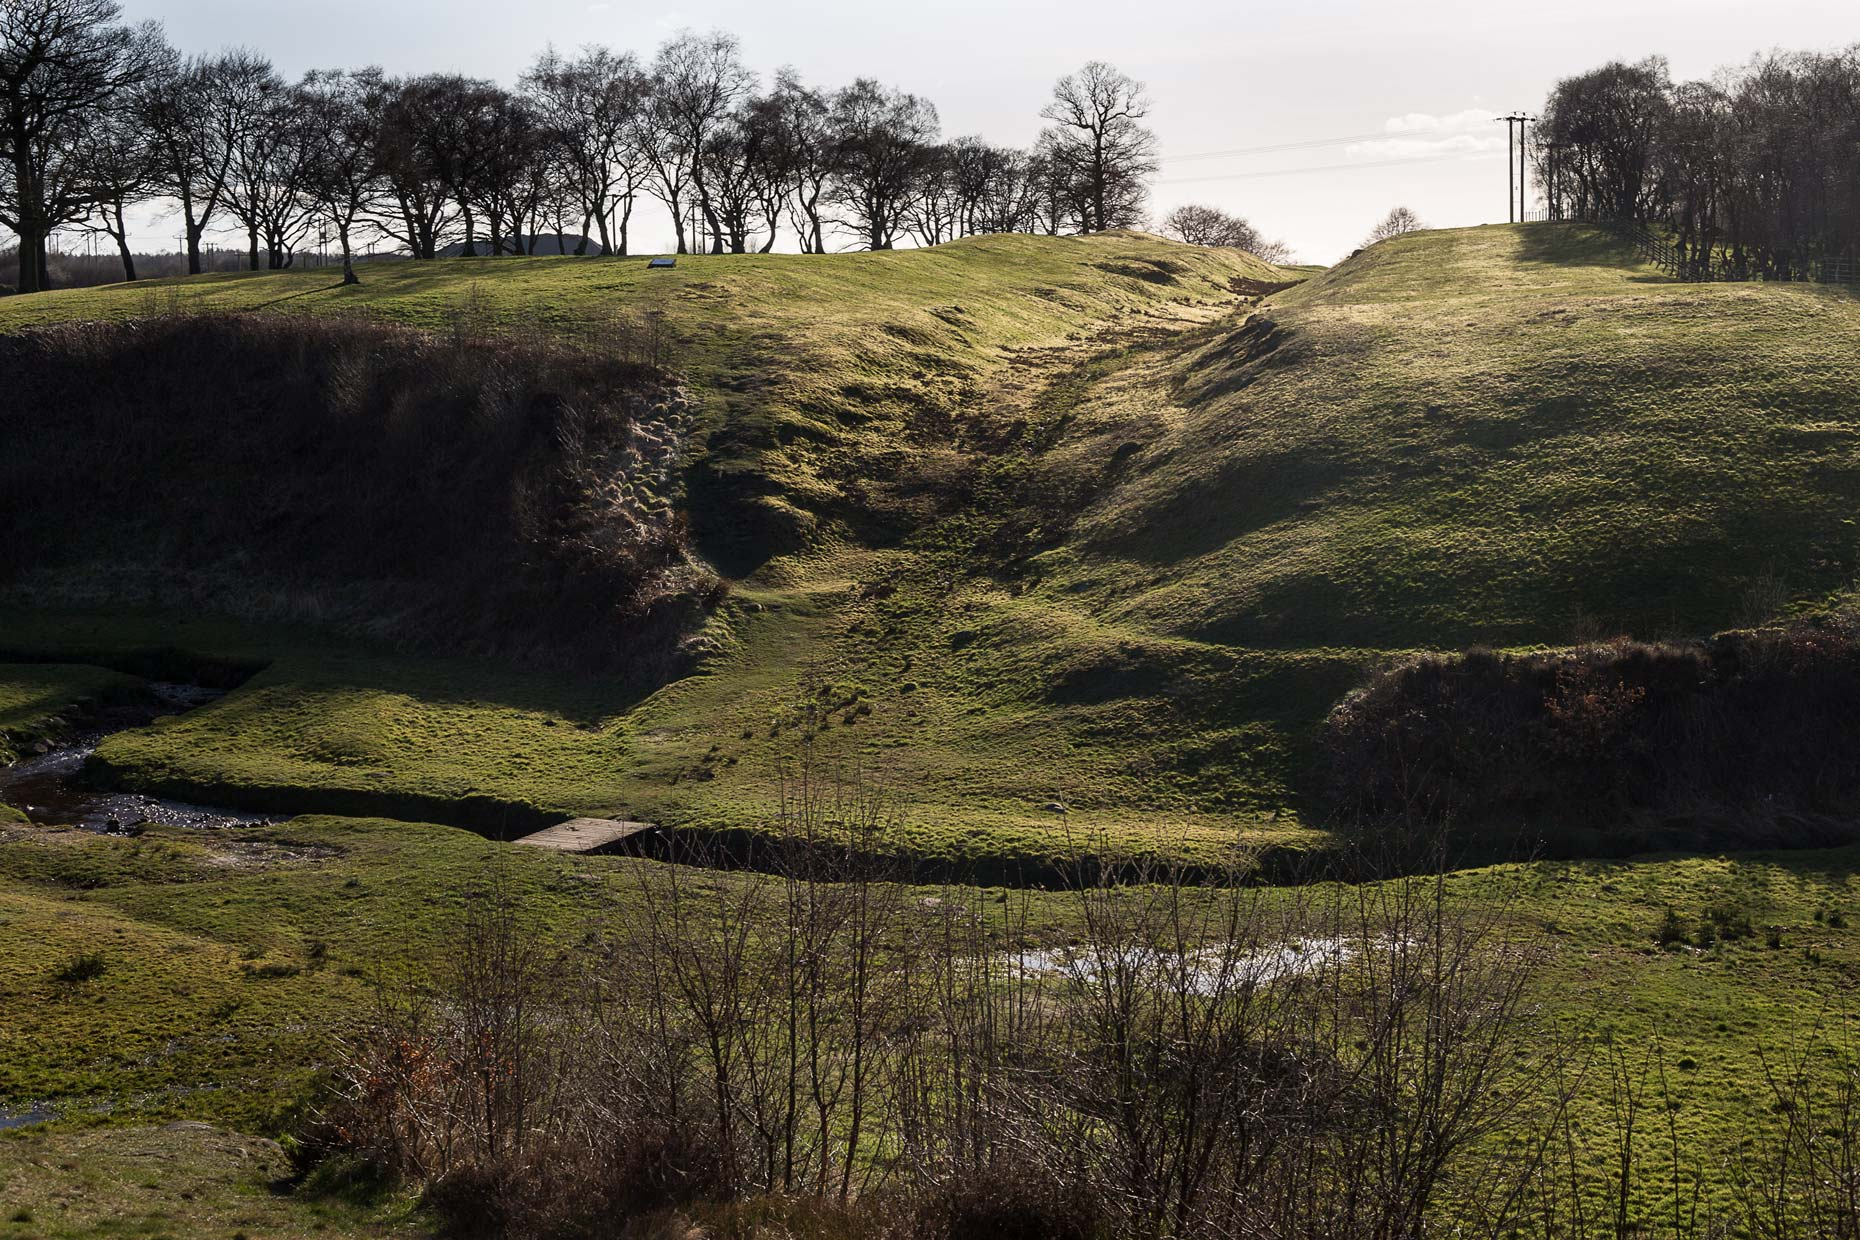 Rough Castle Antonine Wall by Glasgow photographer Sutton-Hibbert